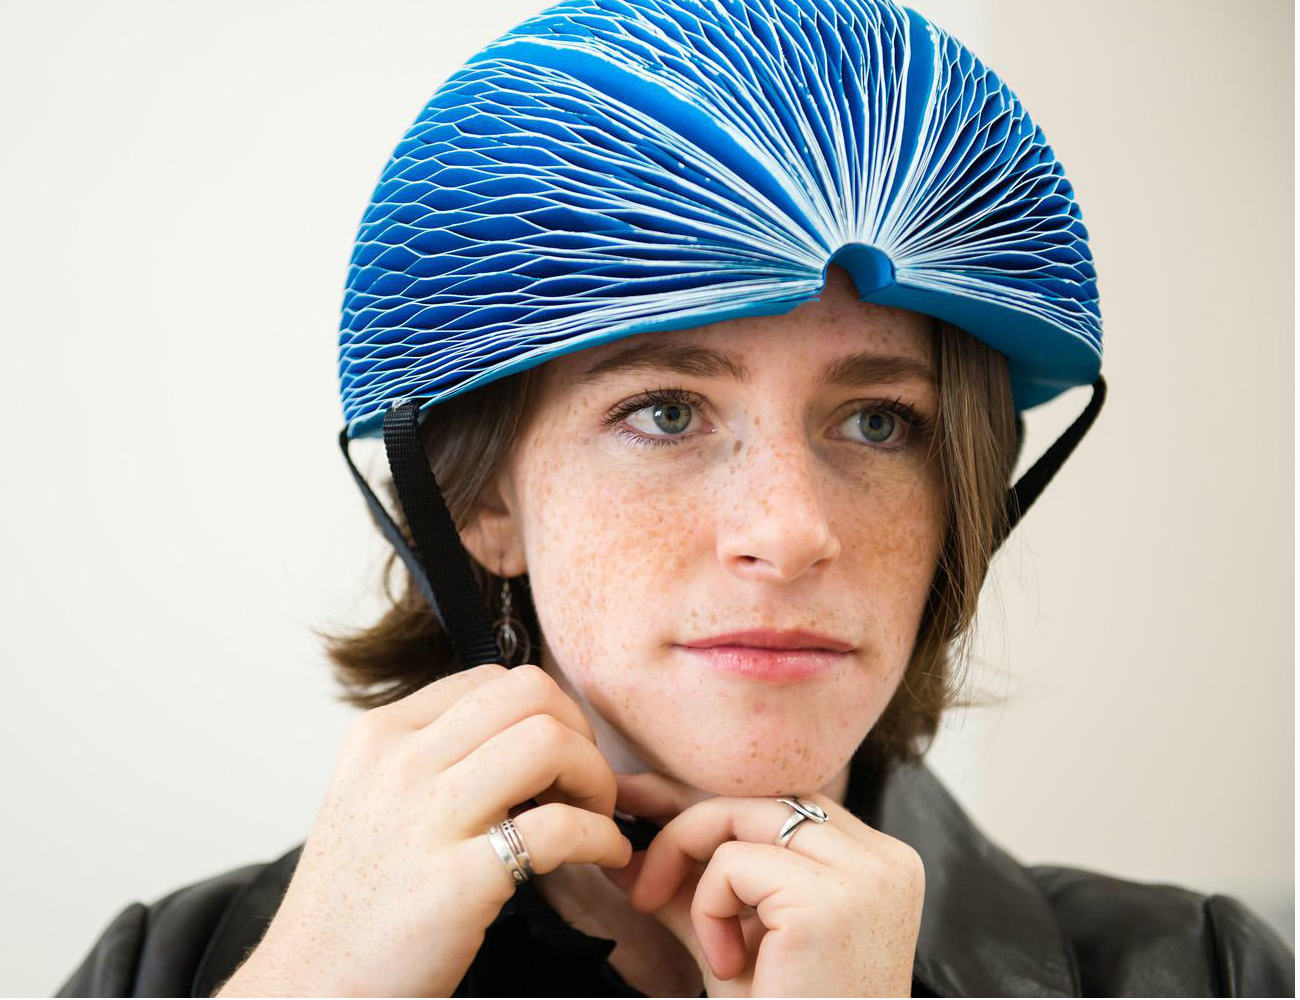 EcoHelmet – Foldable and Recyclable Helmet